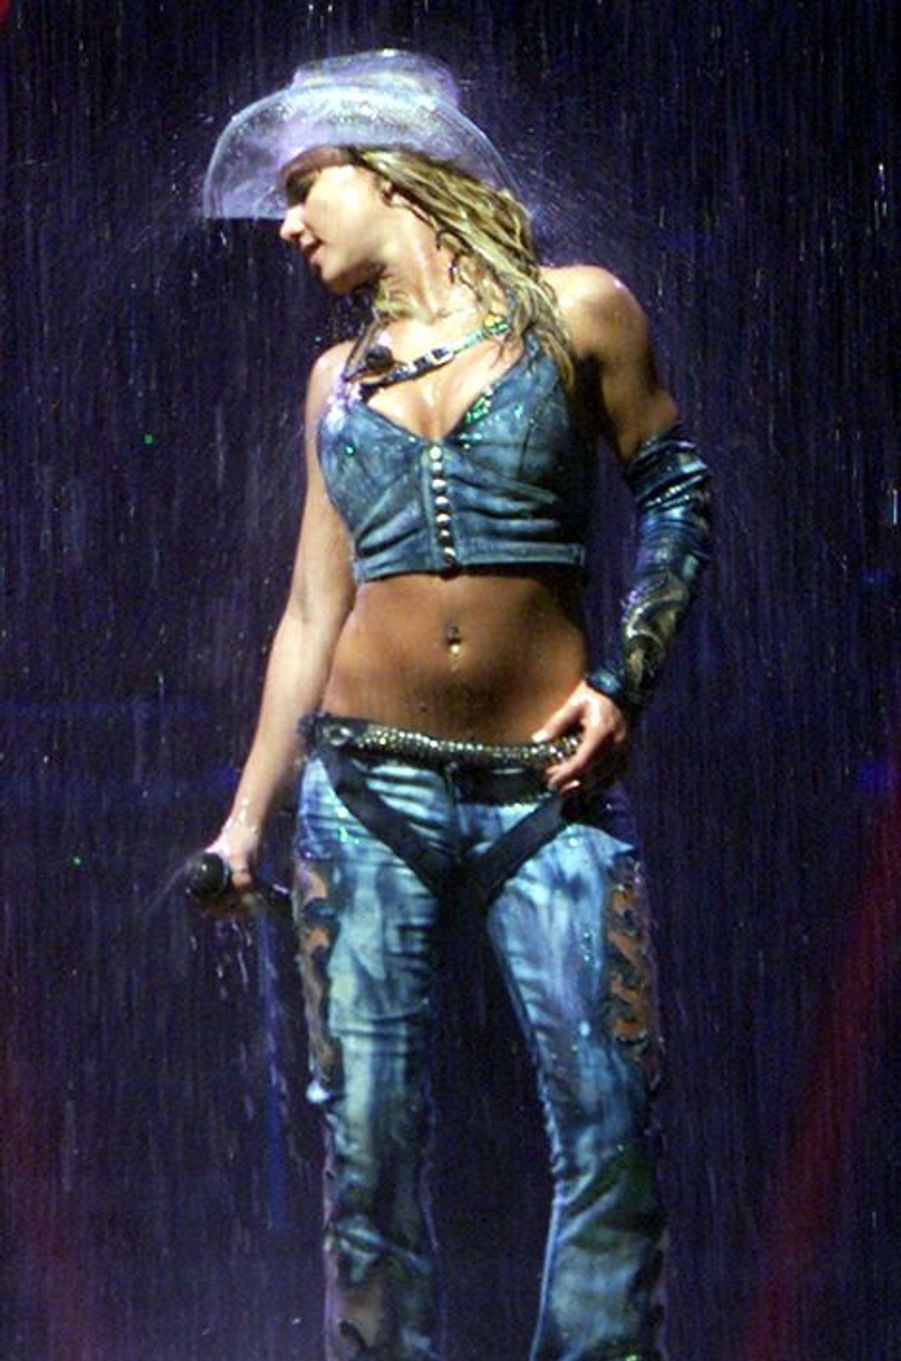 Britney sur la scène du National Car Rental Center de Sunrise, en Floride, le 13 juillet 2002.